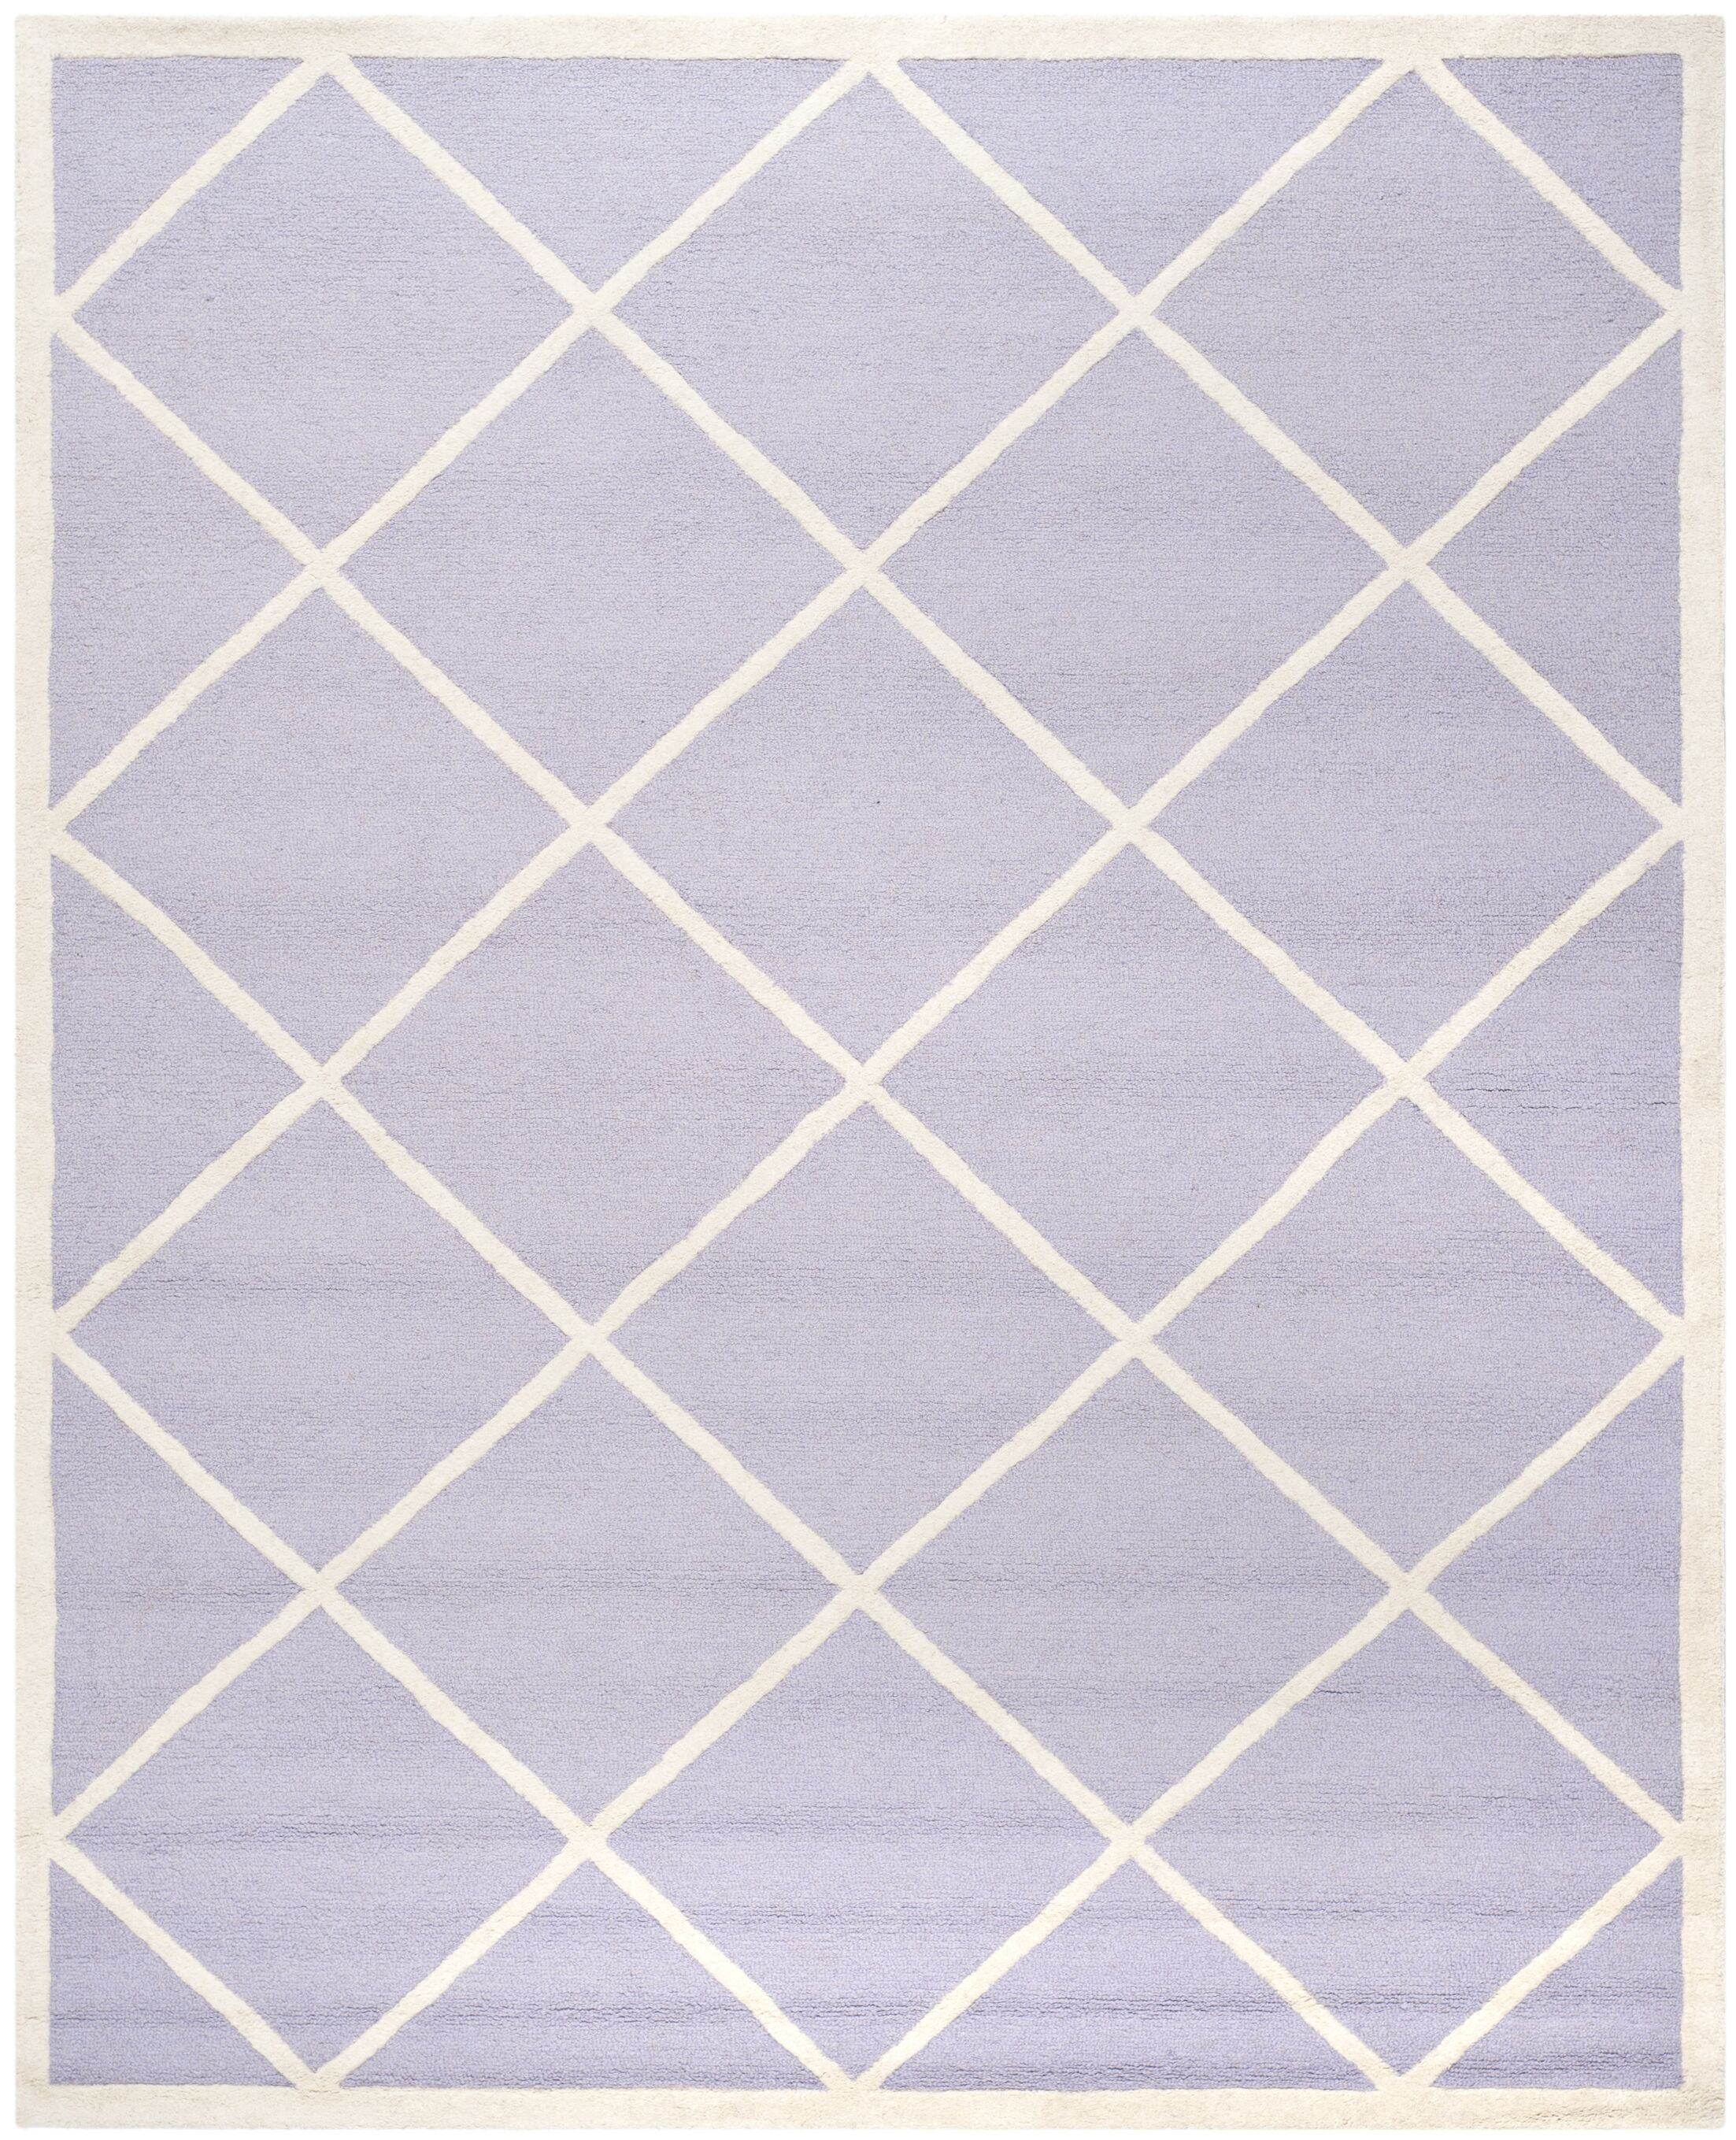 Martins Hand-Tufted Wool Lavander/Ivory Area Rug Rug Size: Rectangle 6' x 9'